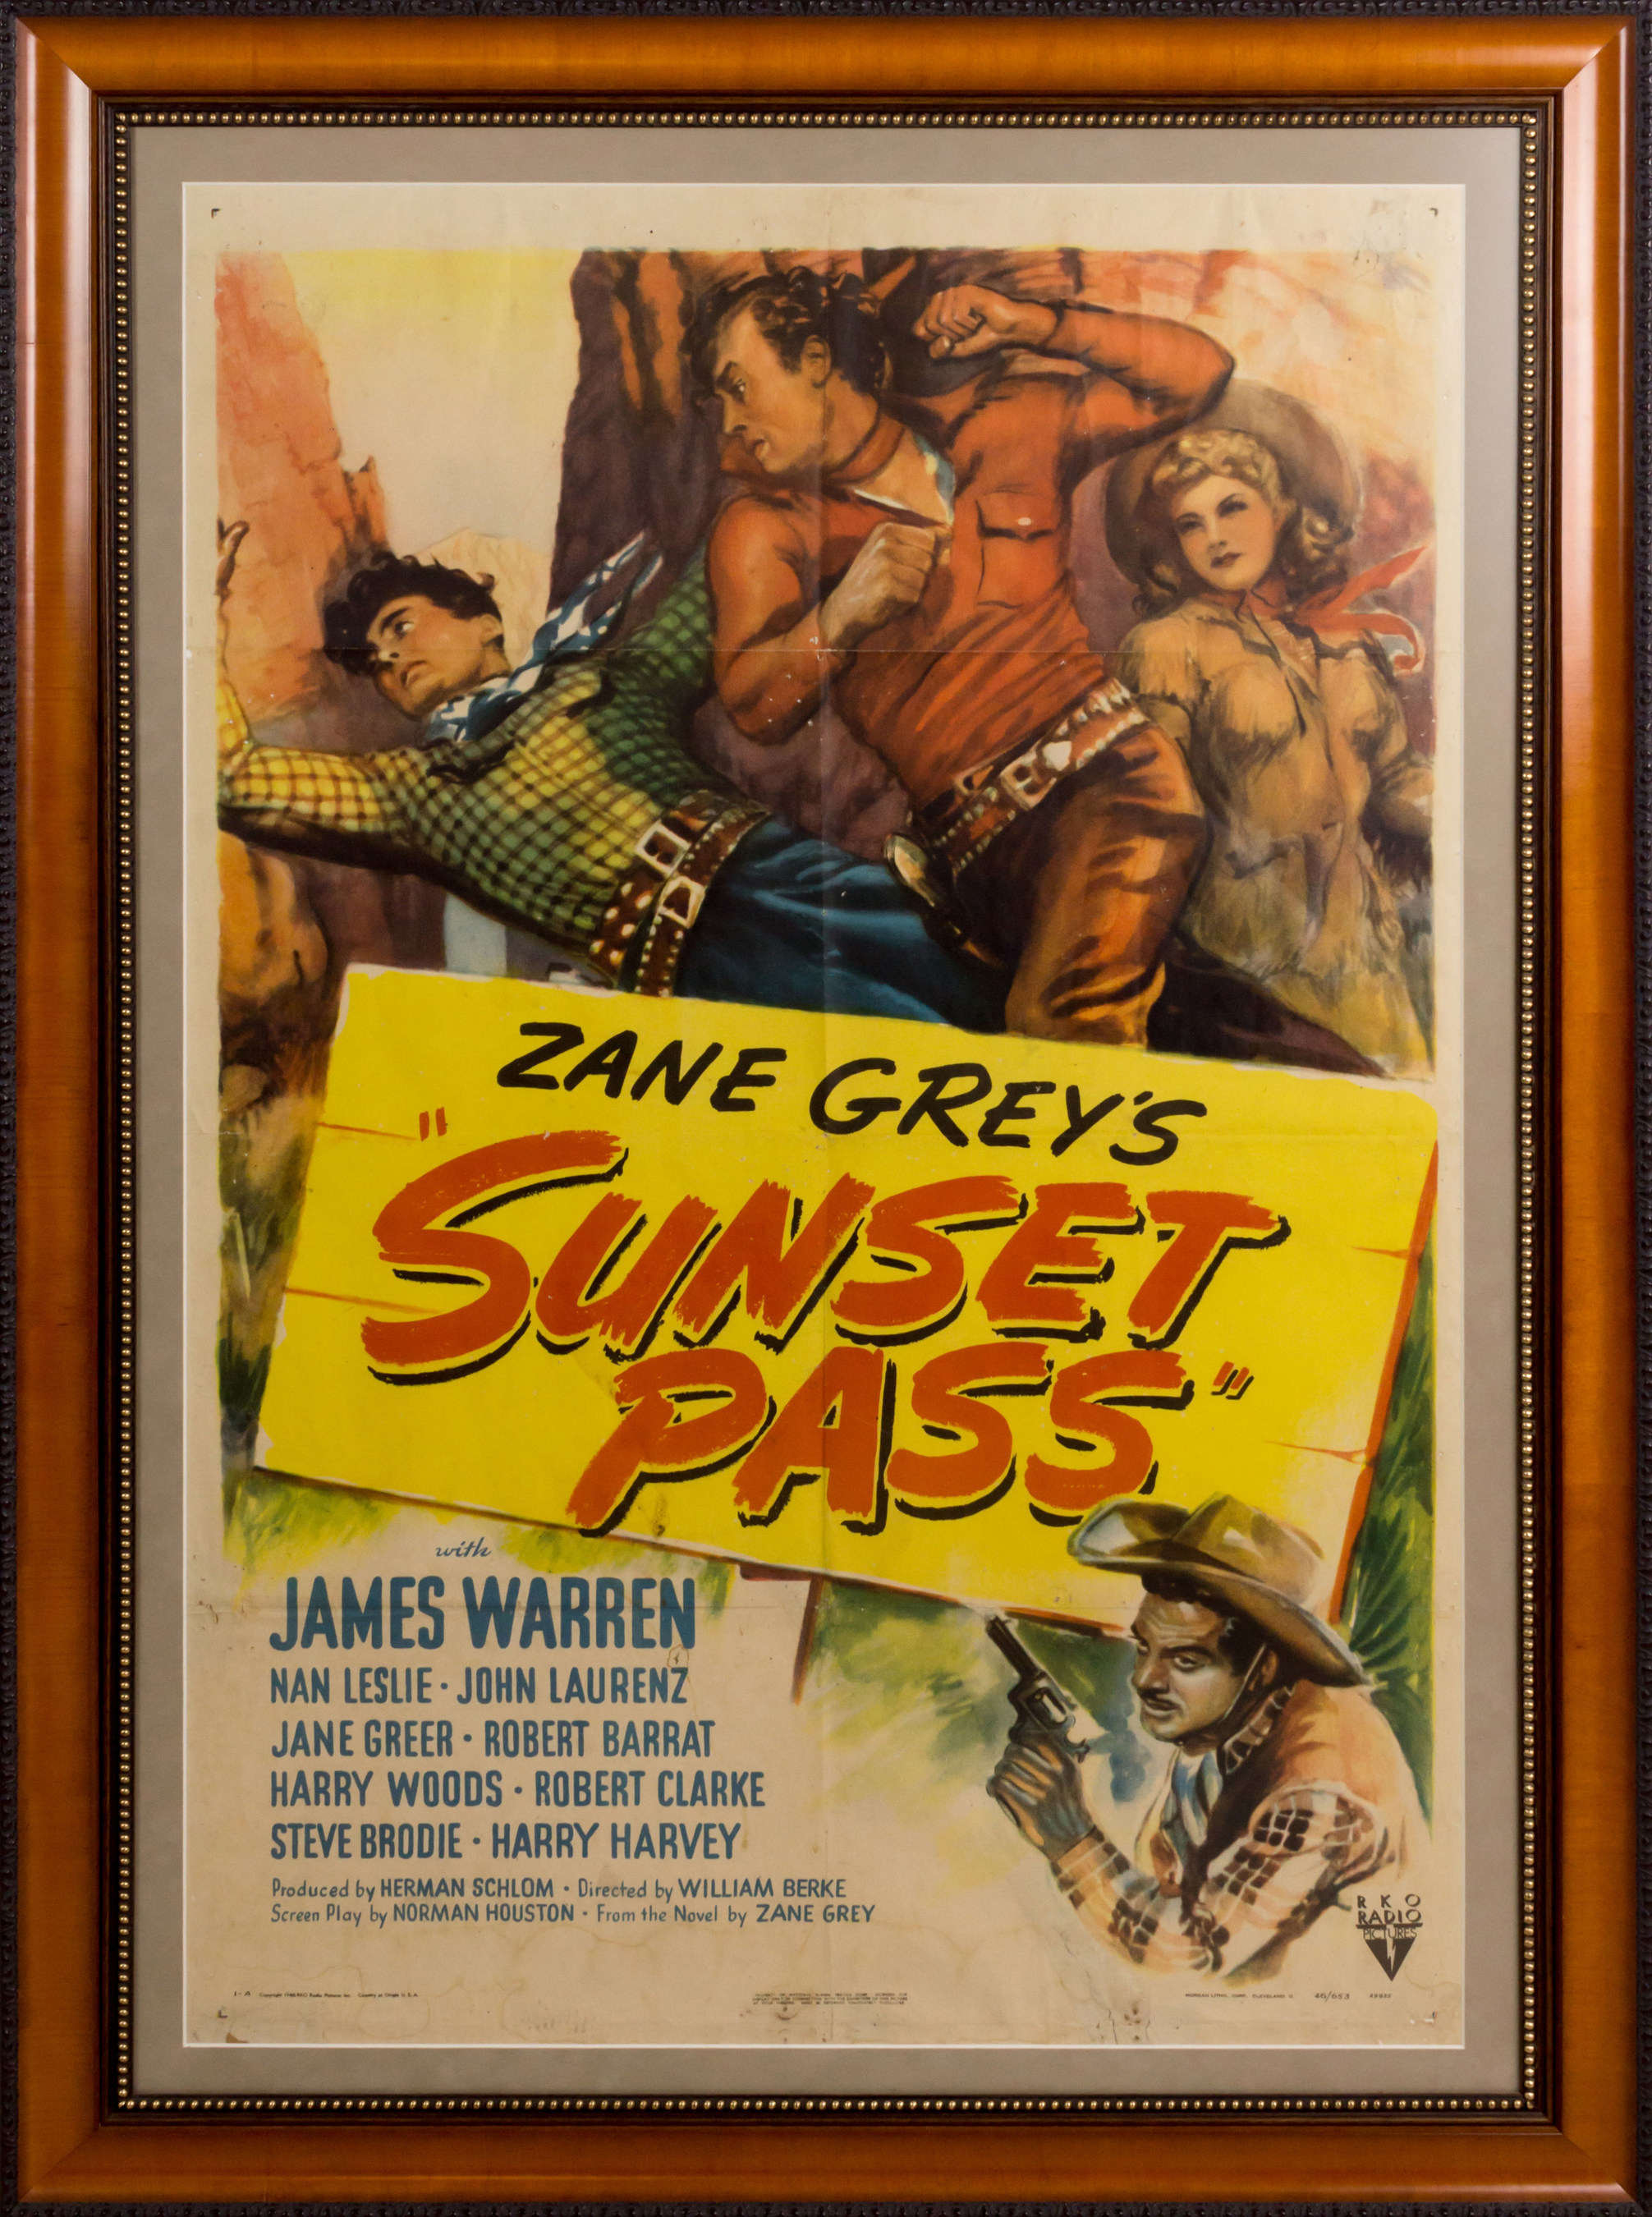 J. Levine Auction & Appraisal's three-day Americana auction includes a large, notable collection of Zane Grey books and movie posters, including several signed, first-edition books. The auction takes place Thursday, Friday and Saturday, July 28, 29 & 30 in Scottsdale, Arizona. www.jlevines.com